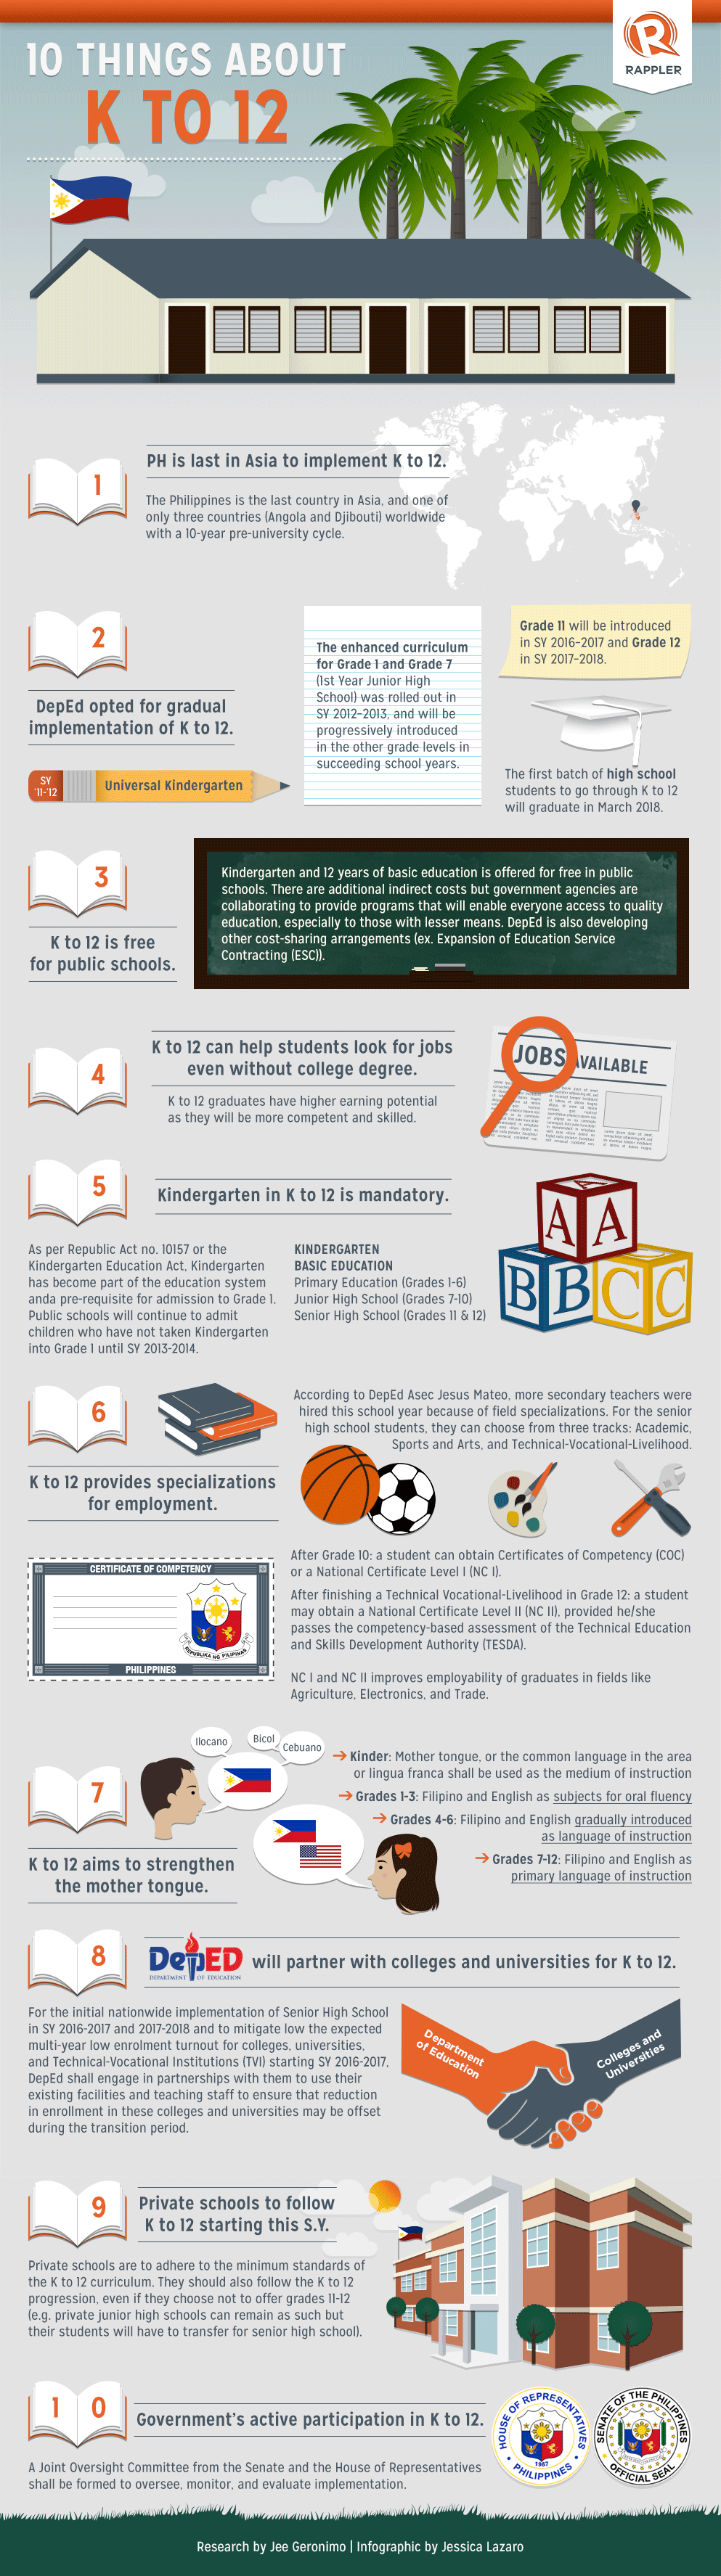 INFOGRAPHIC: 10 things about K to 12